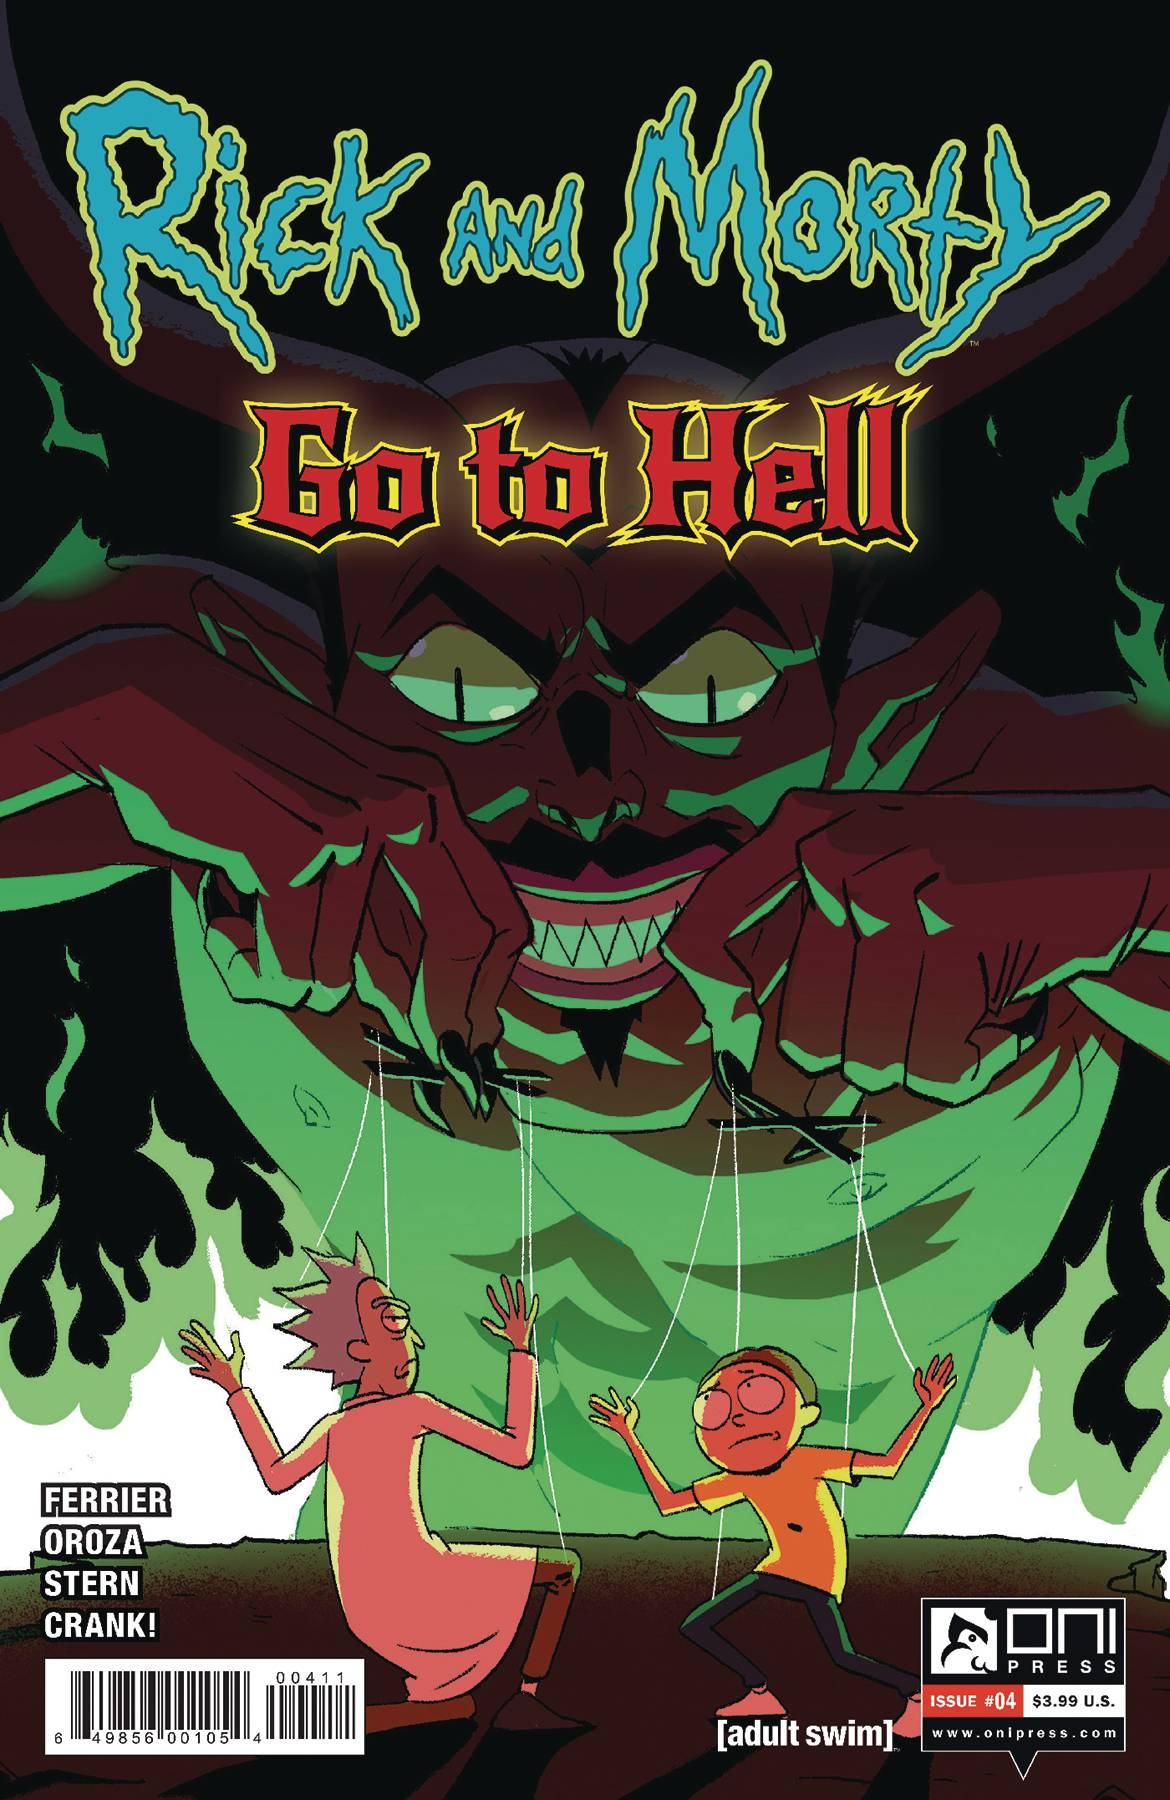 RICK AND MORTY GO TO HELL #4 CVR A OROZA